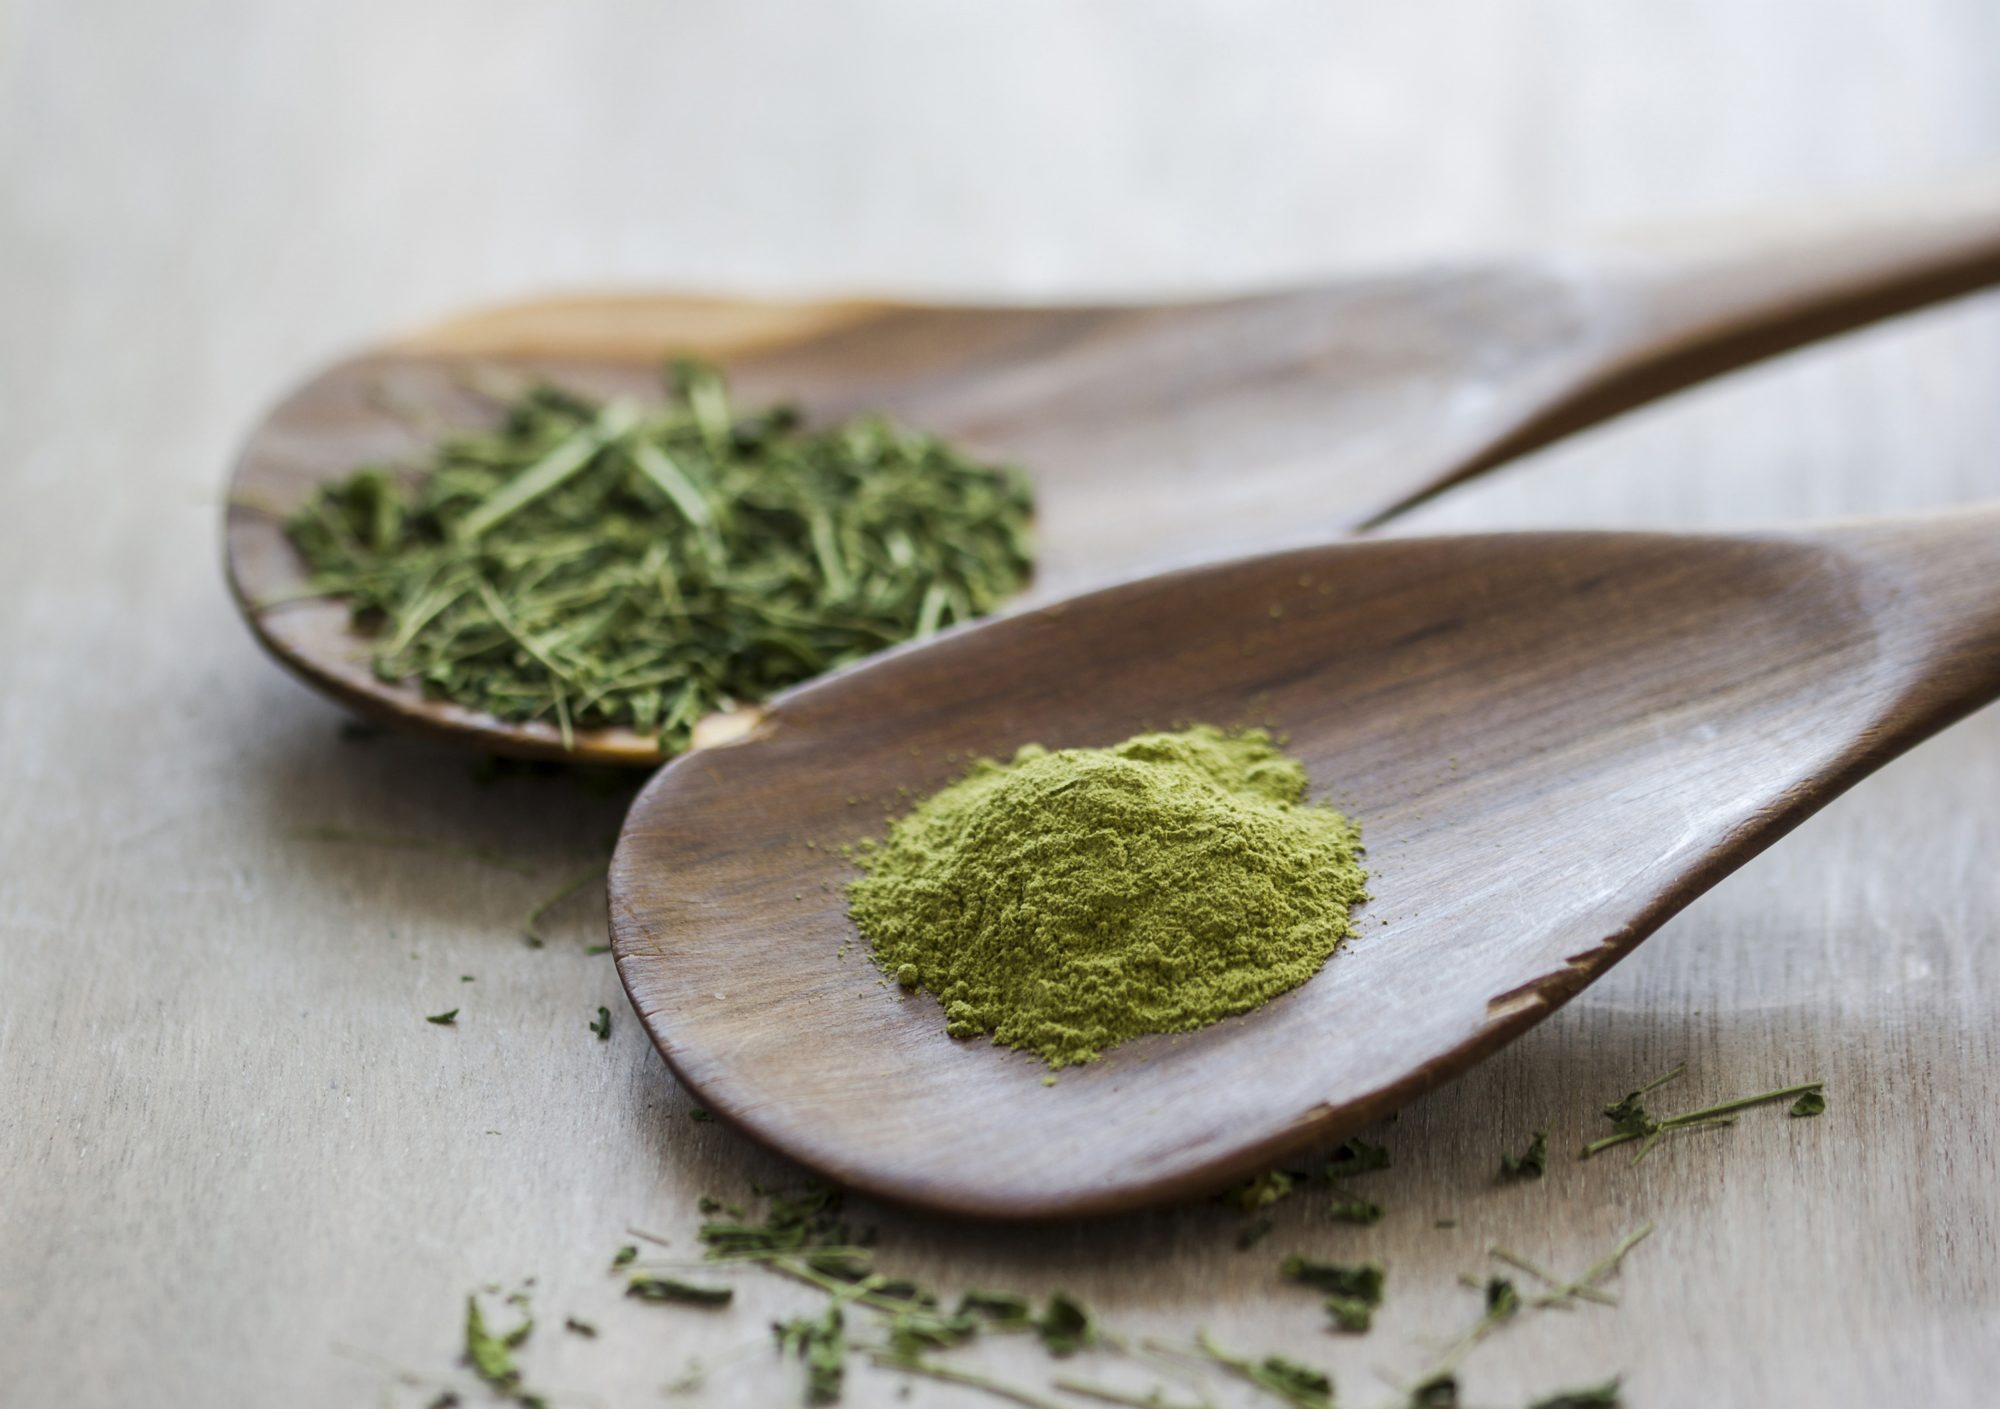 What Is Moringa? Your Guide to This Buzzy Nutritional Supplement